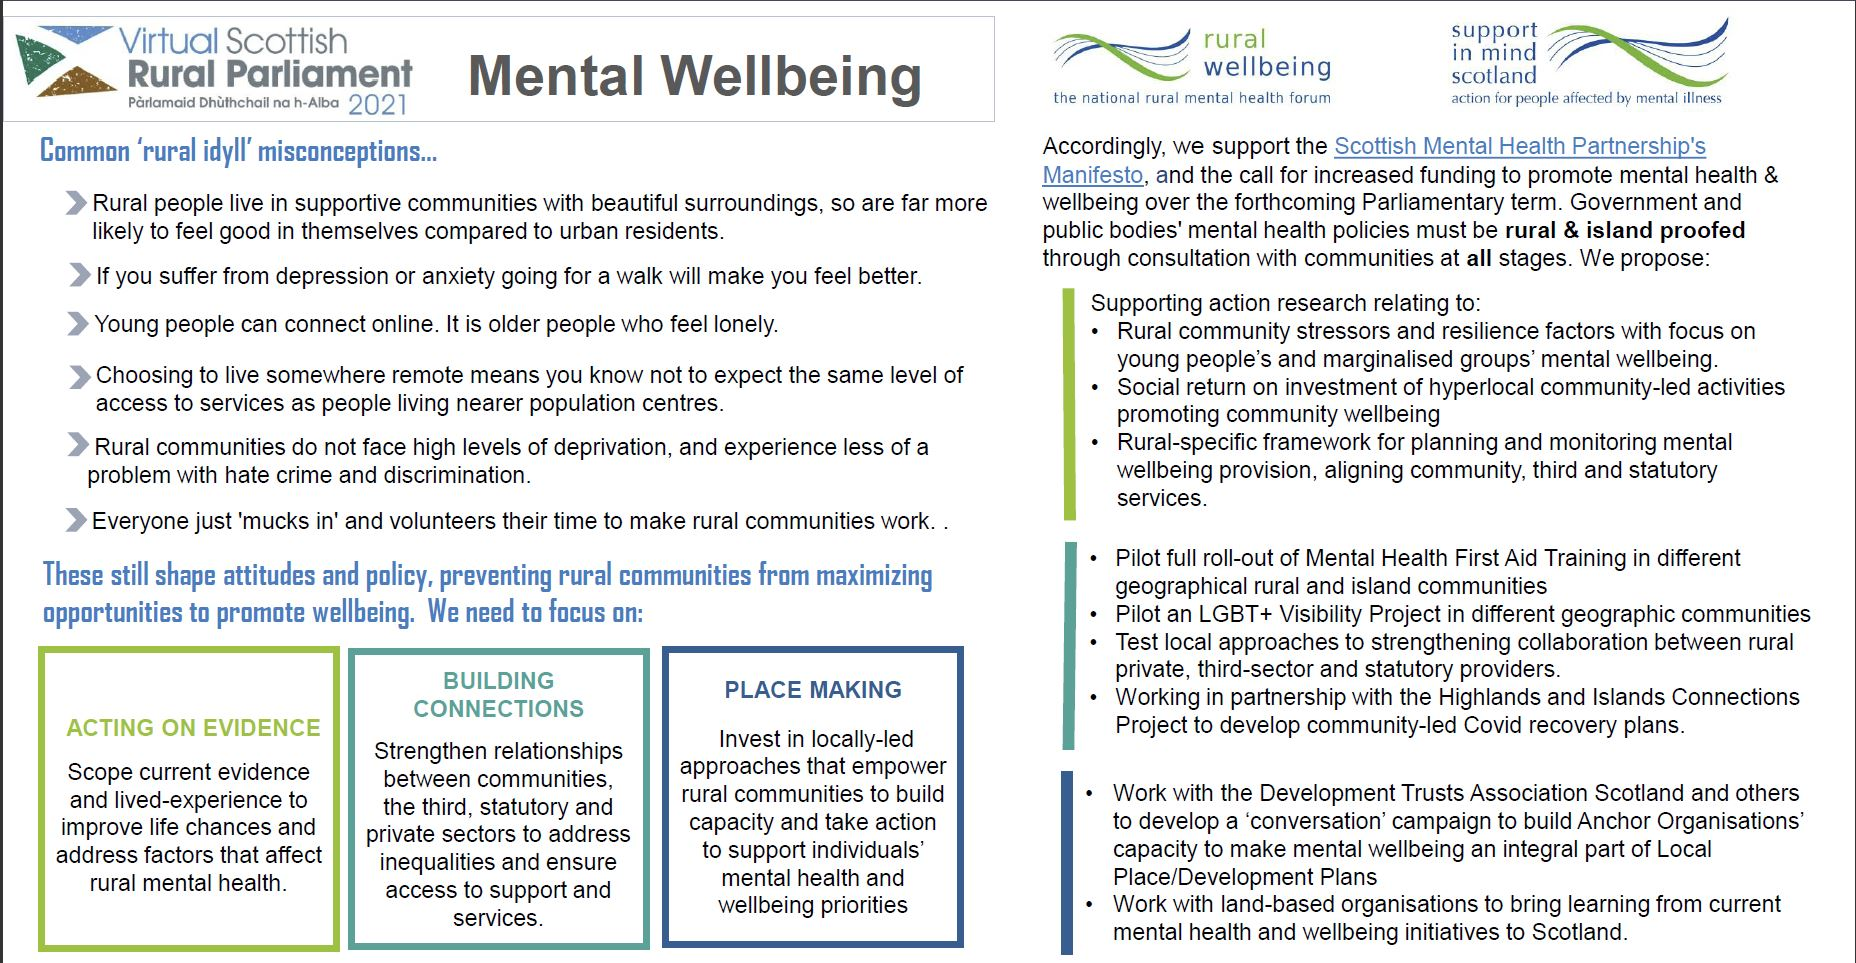 vRSP21 Session Recommendations - Mental Wellbeing